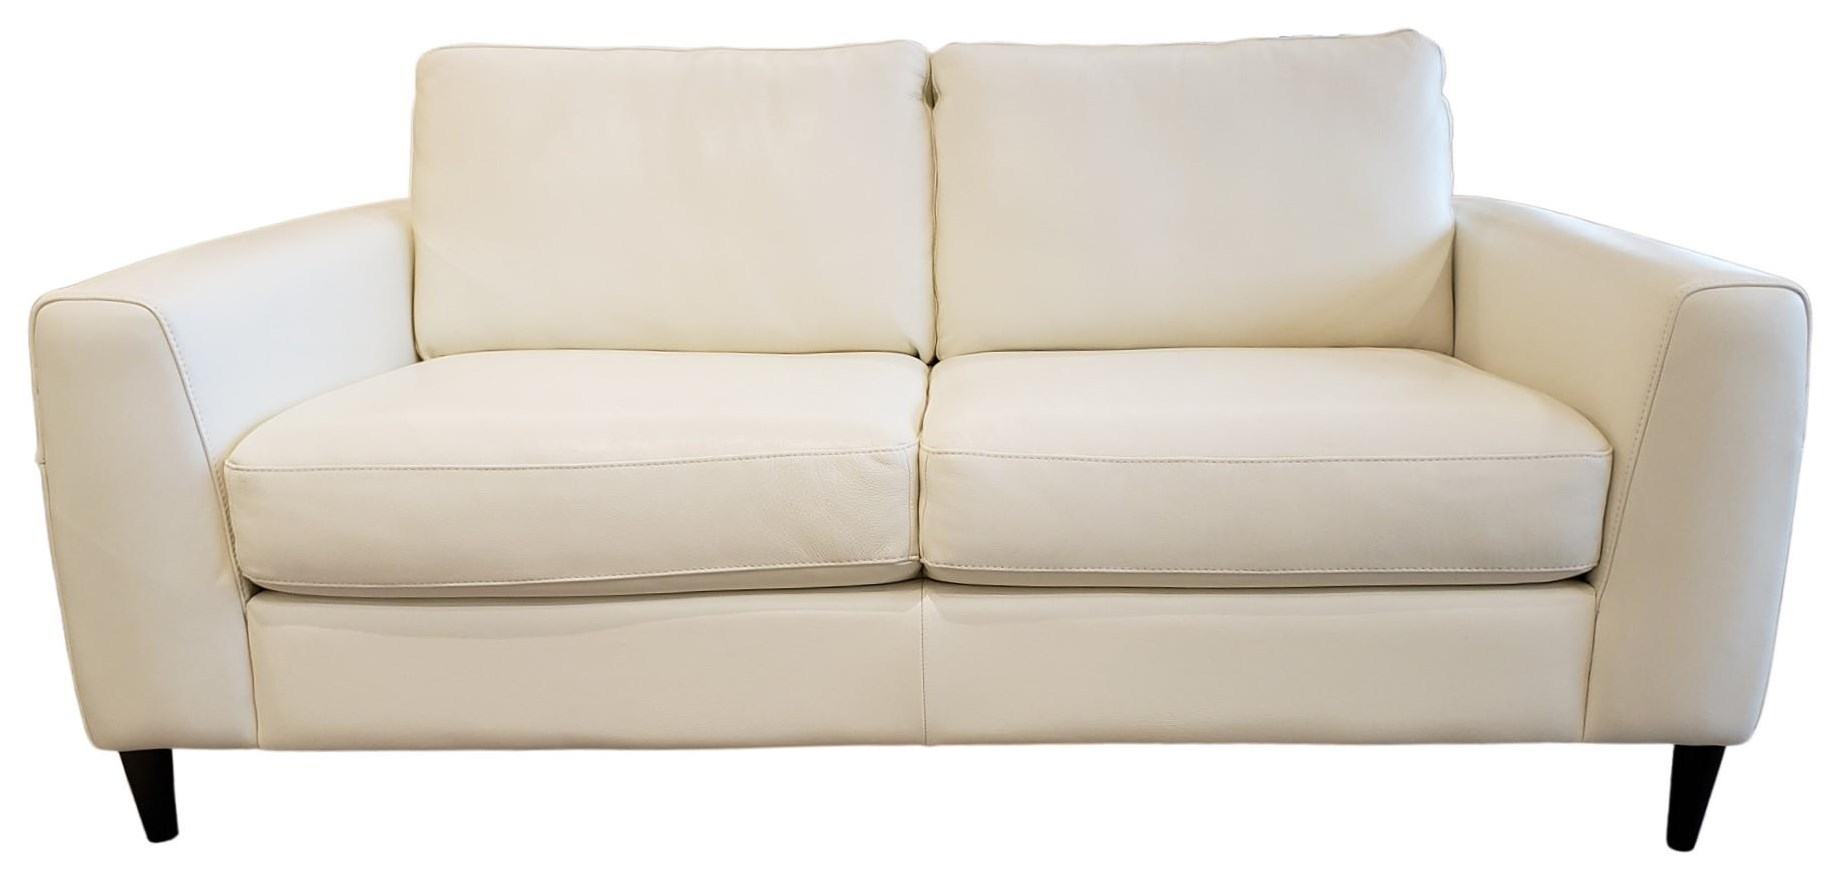 Atticus Love Seat by Palliser at Upper Room Home Furnishings